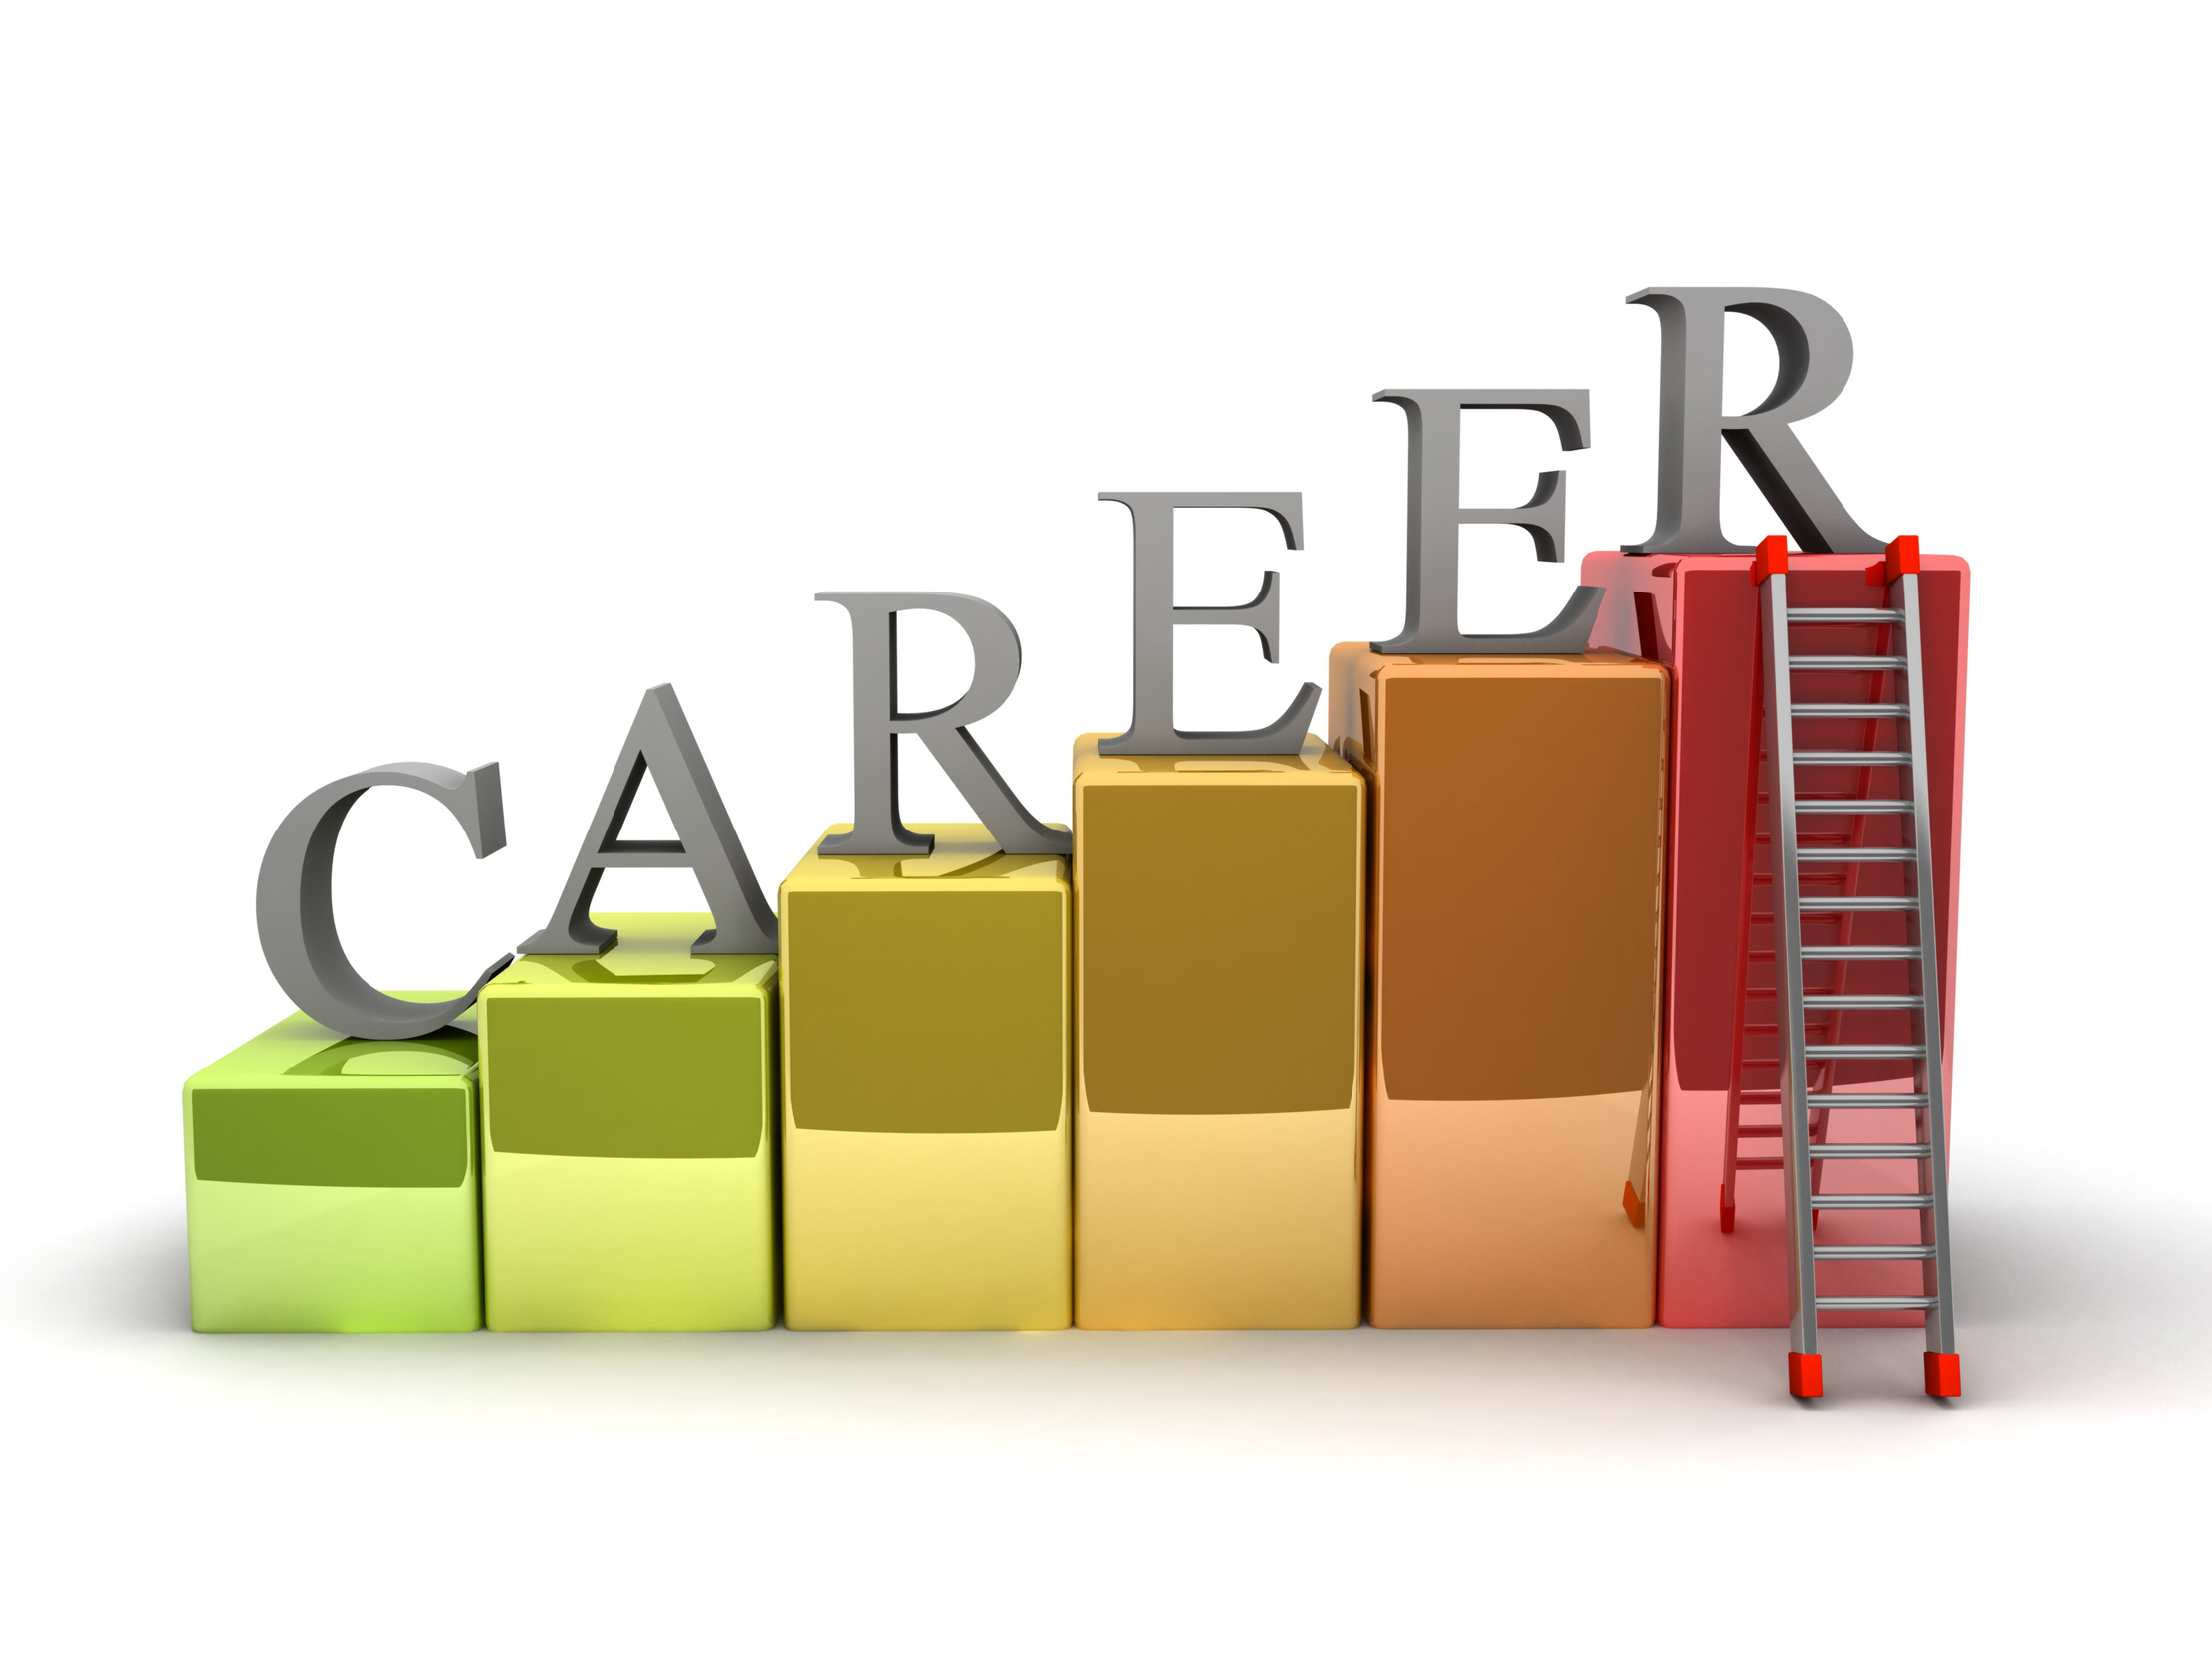 Pathway clipart career choice Choice Career Of Career Image